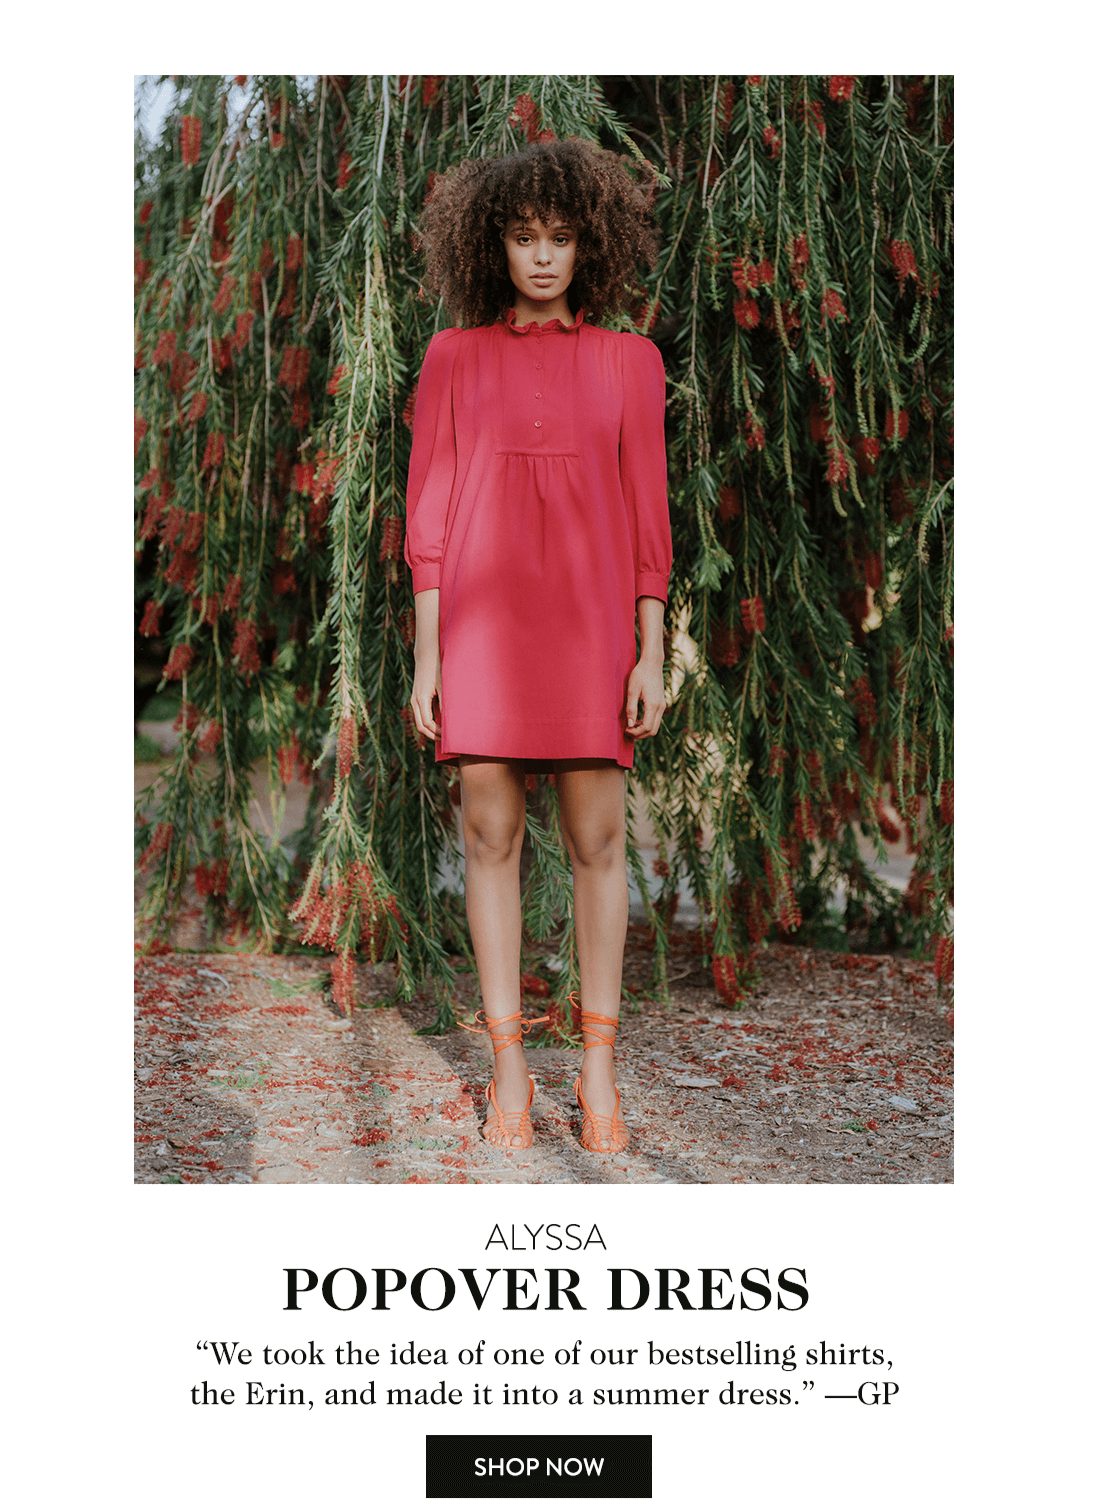 Alyssa Popover Dress